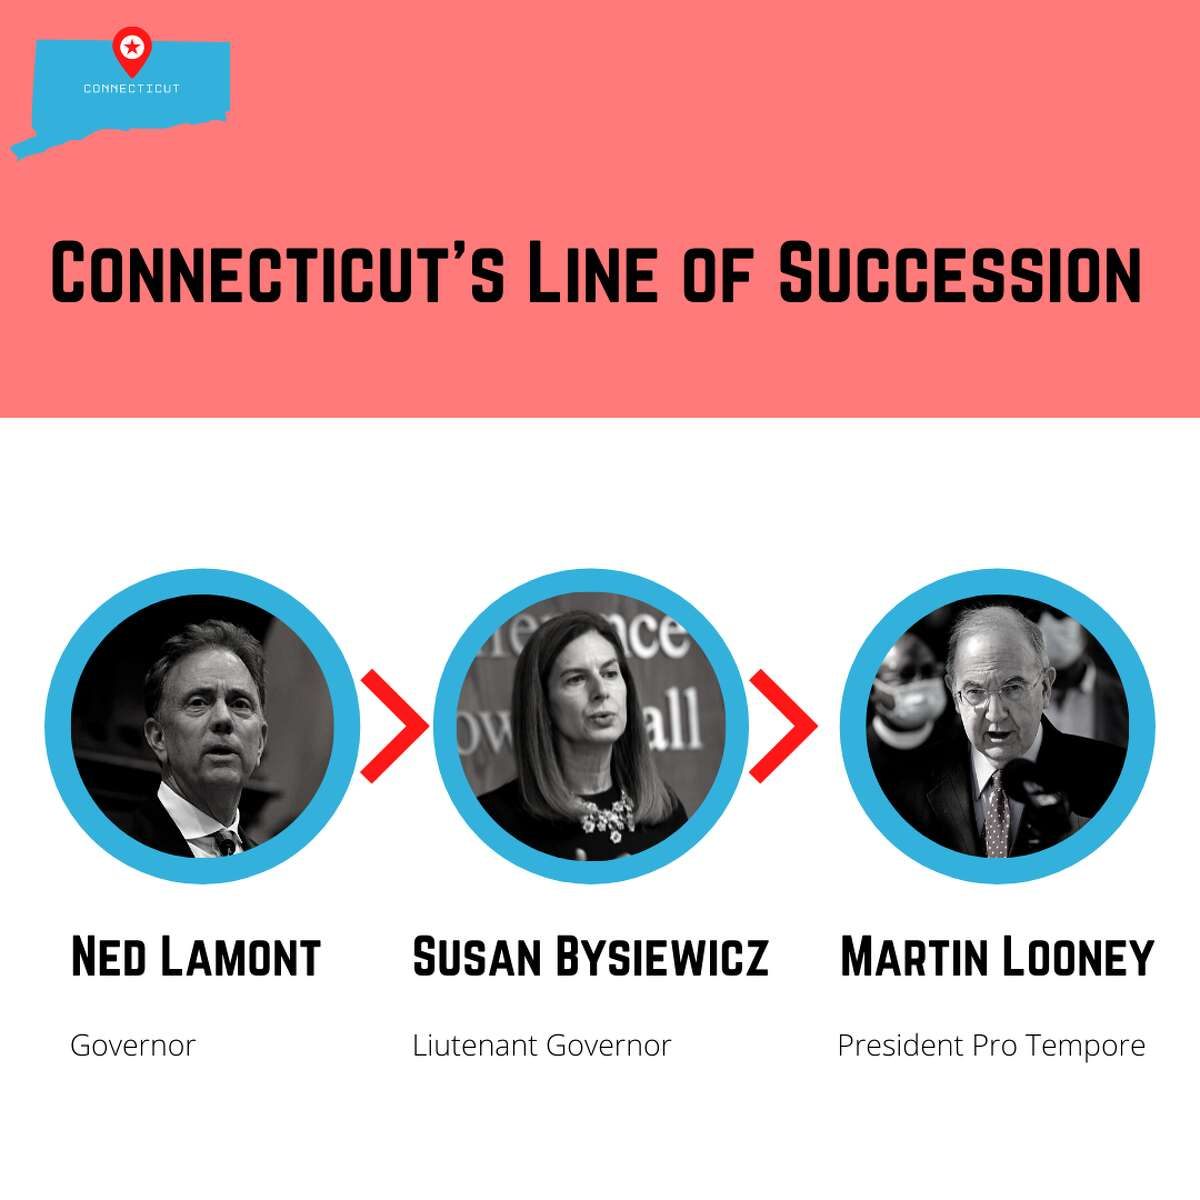 Connecticut's Line of Succession for the Governor's position.